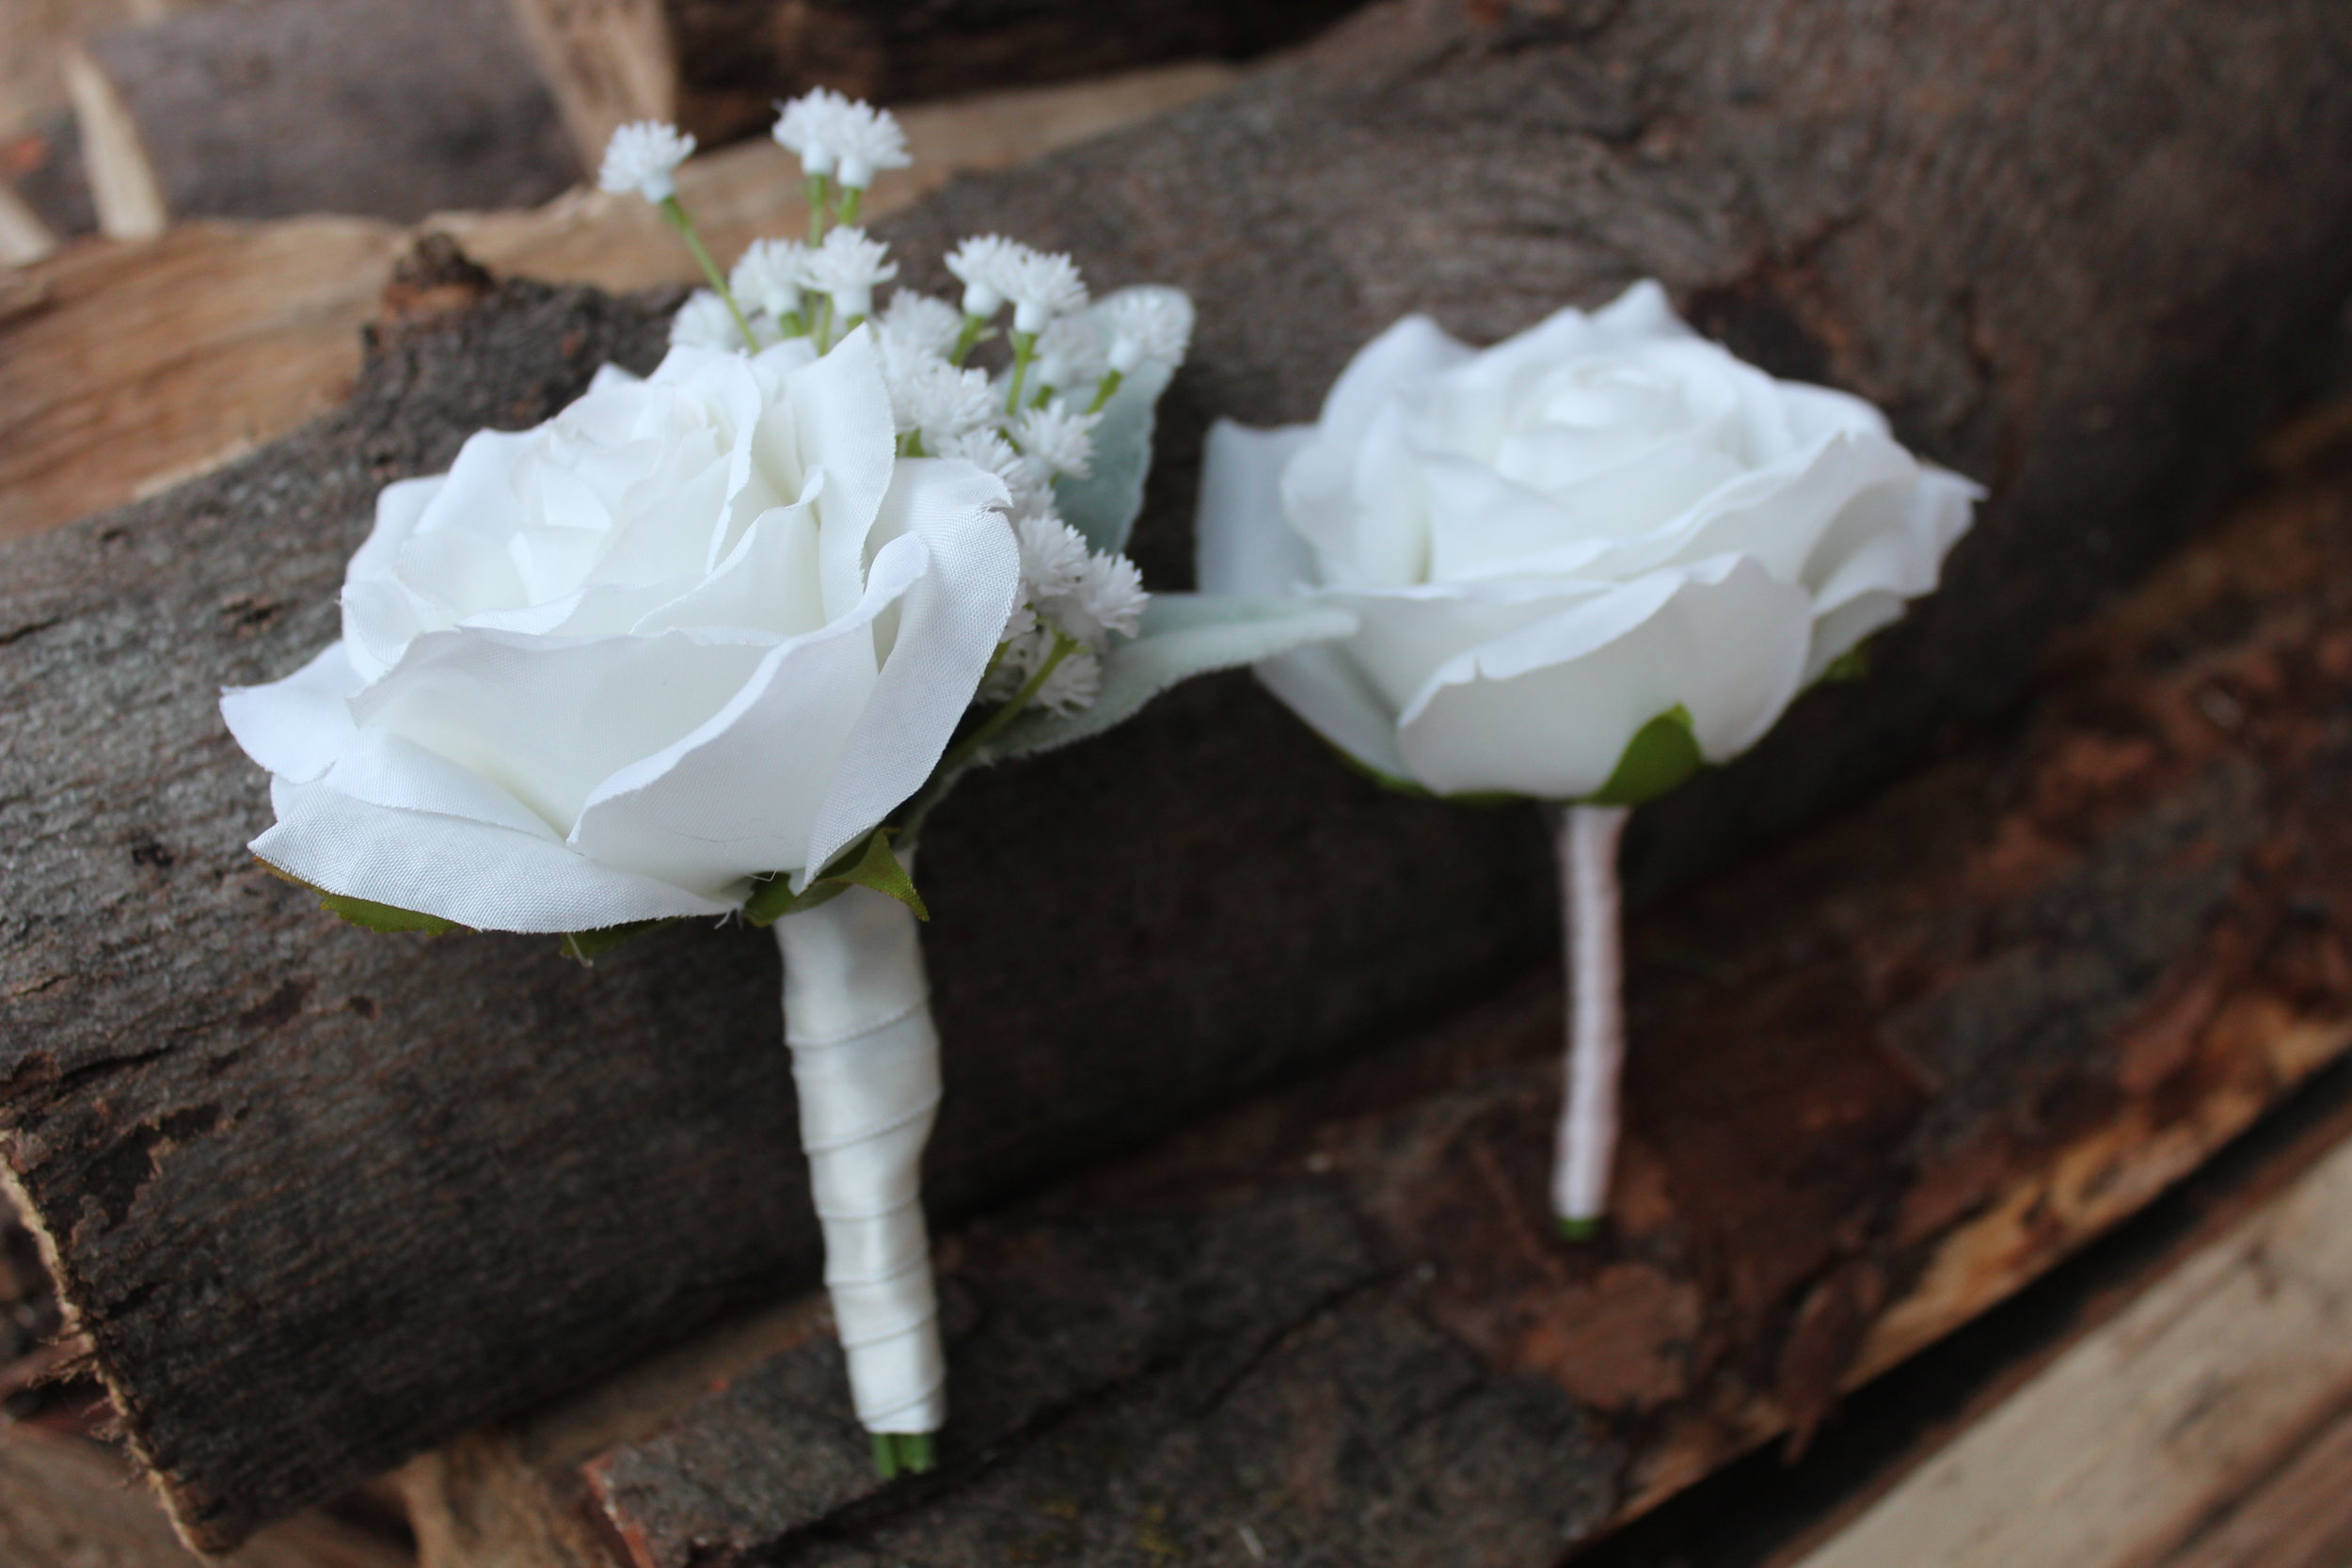 Groom's boutonniere (left) and groomsmen (right)